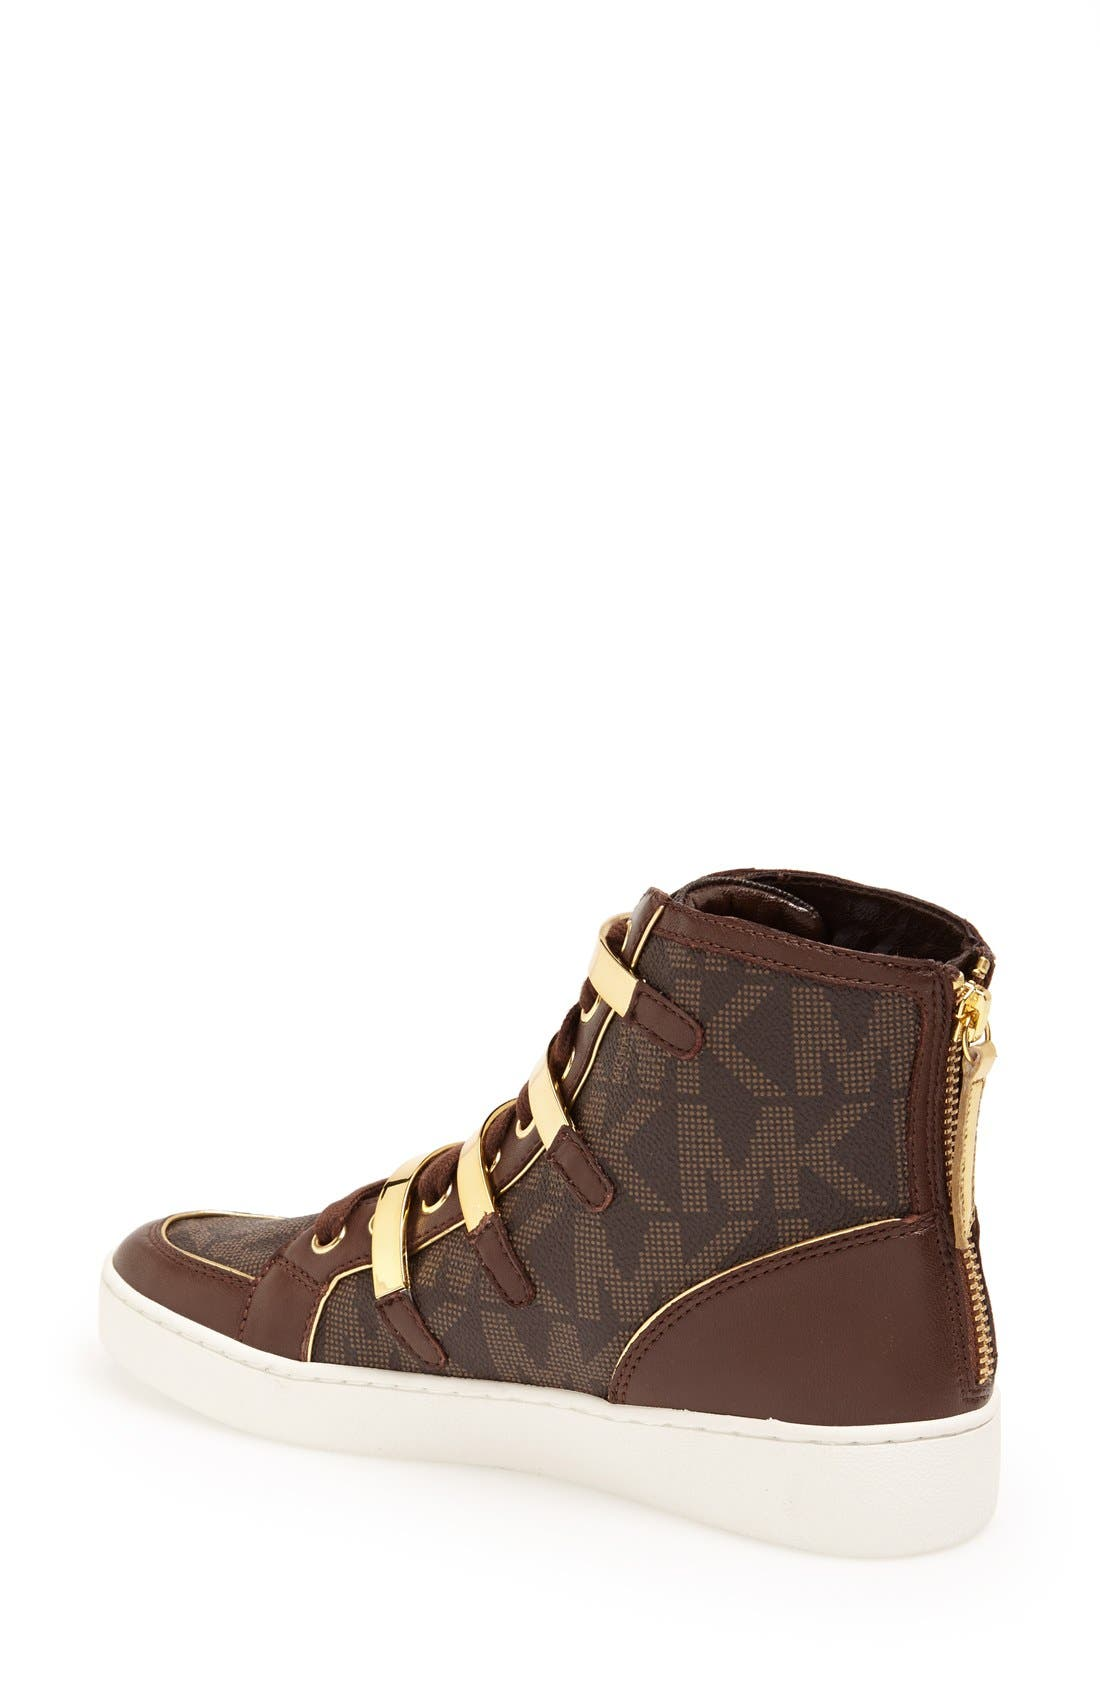 Alternate Image 2  - MICHAEL Michael Kors 'Kimberly' High Top Sneaker (Women)